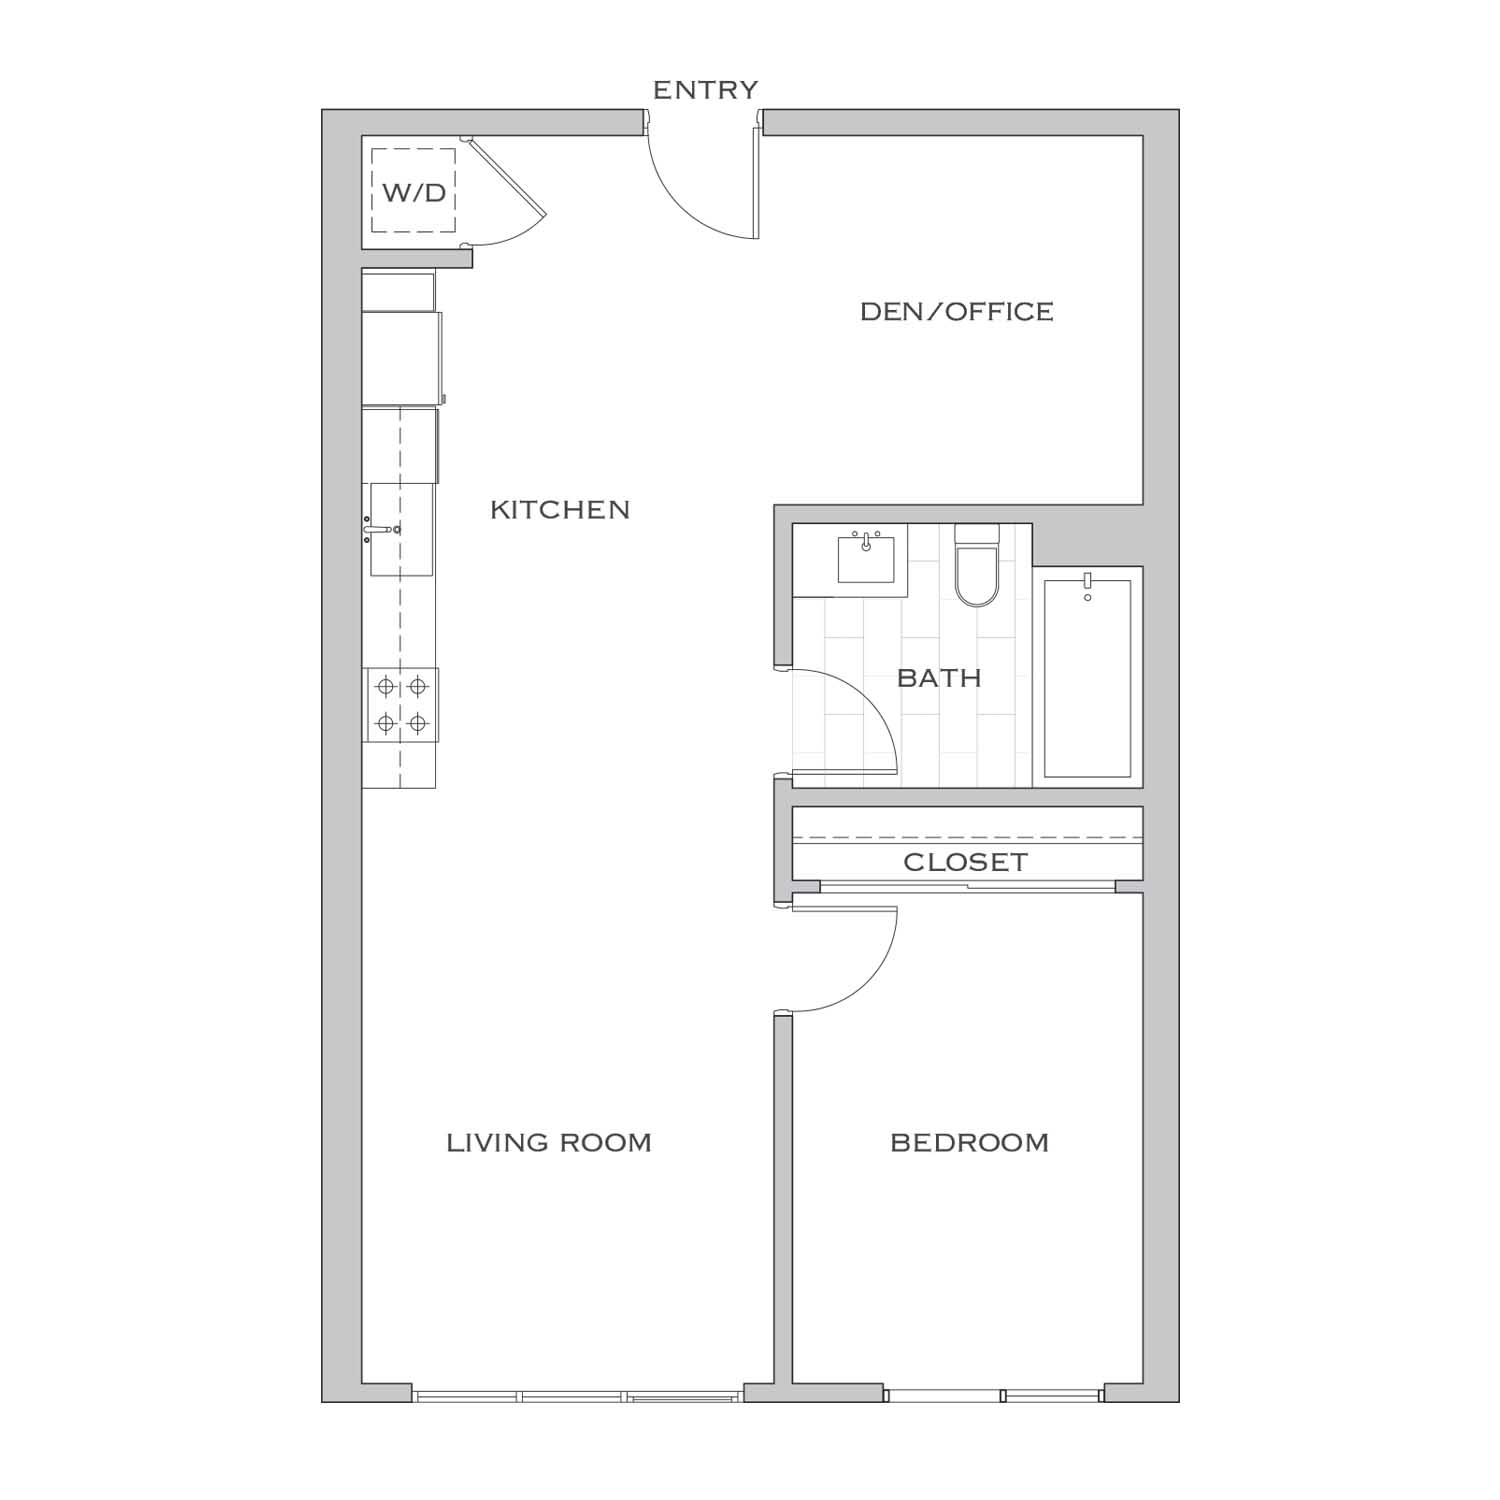 Nielson One floor plan diagram. One bedroom, one bathroom, an open kitchen and living area, and a washer dryer.